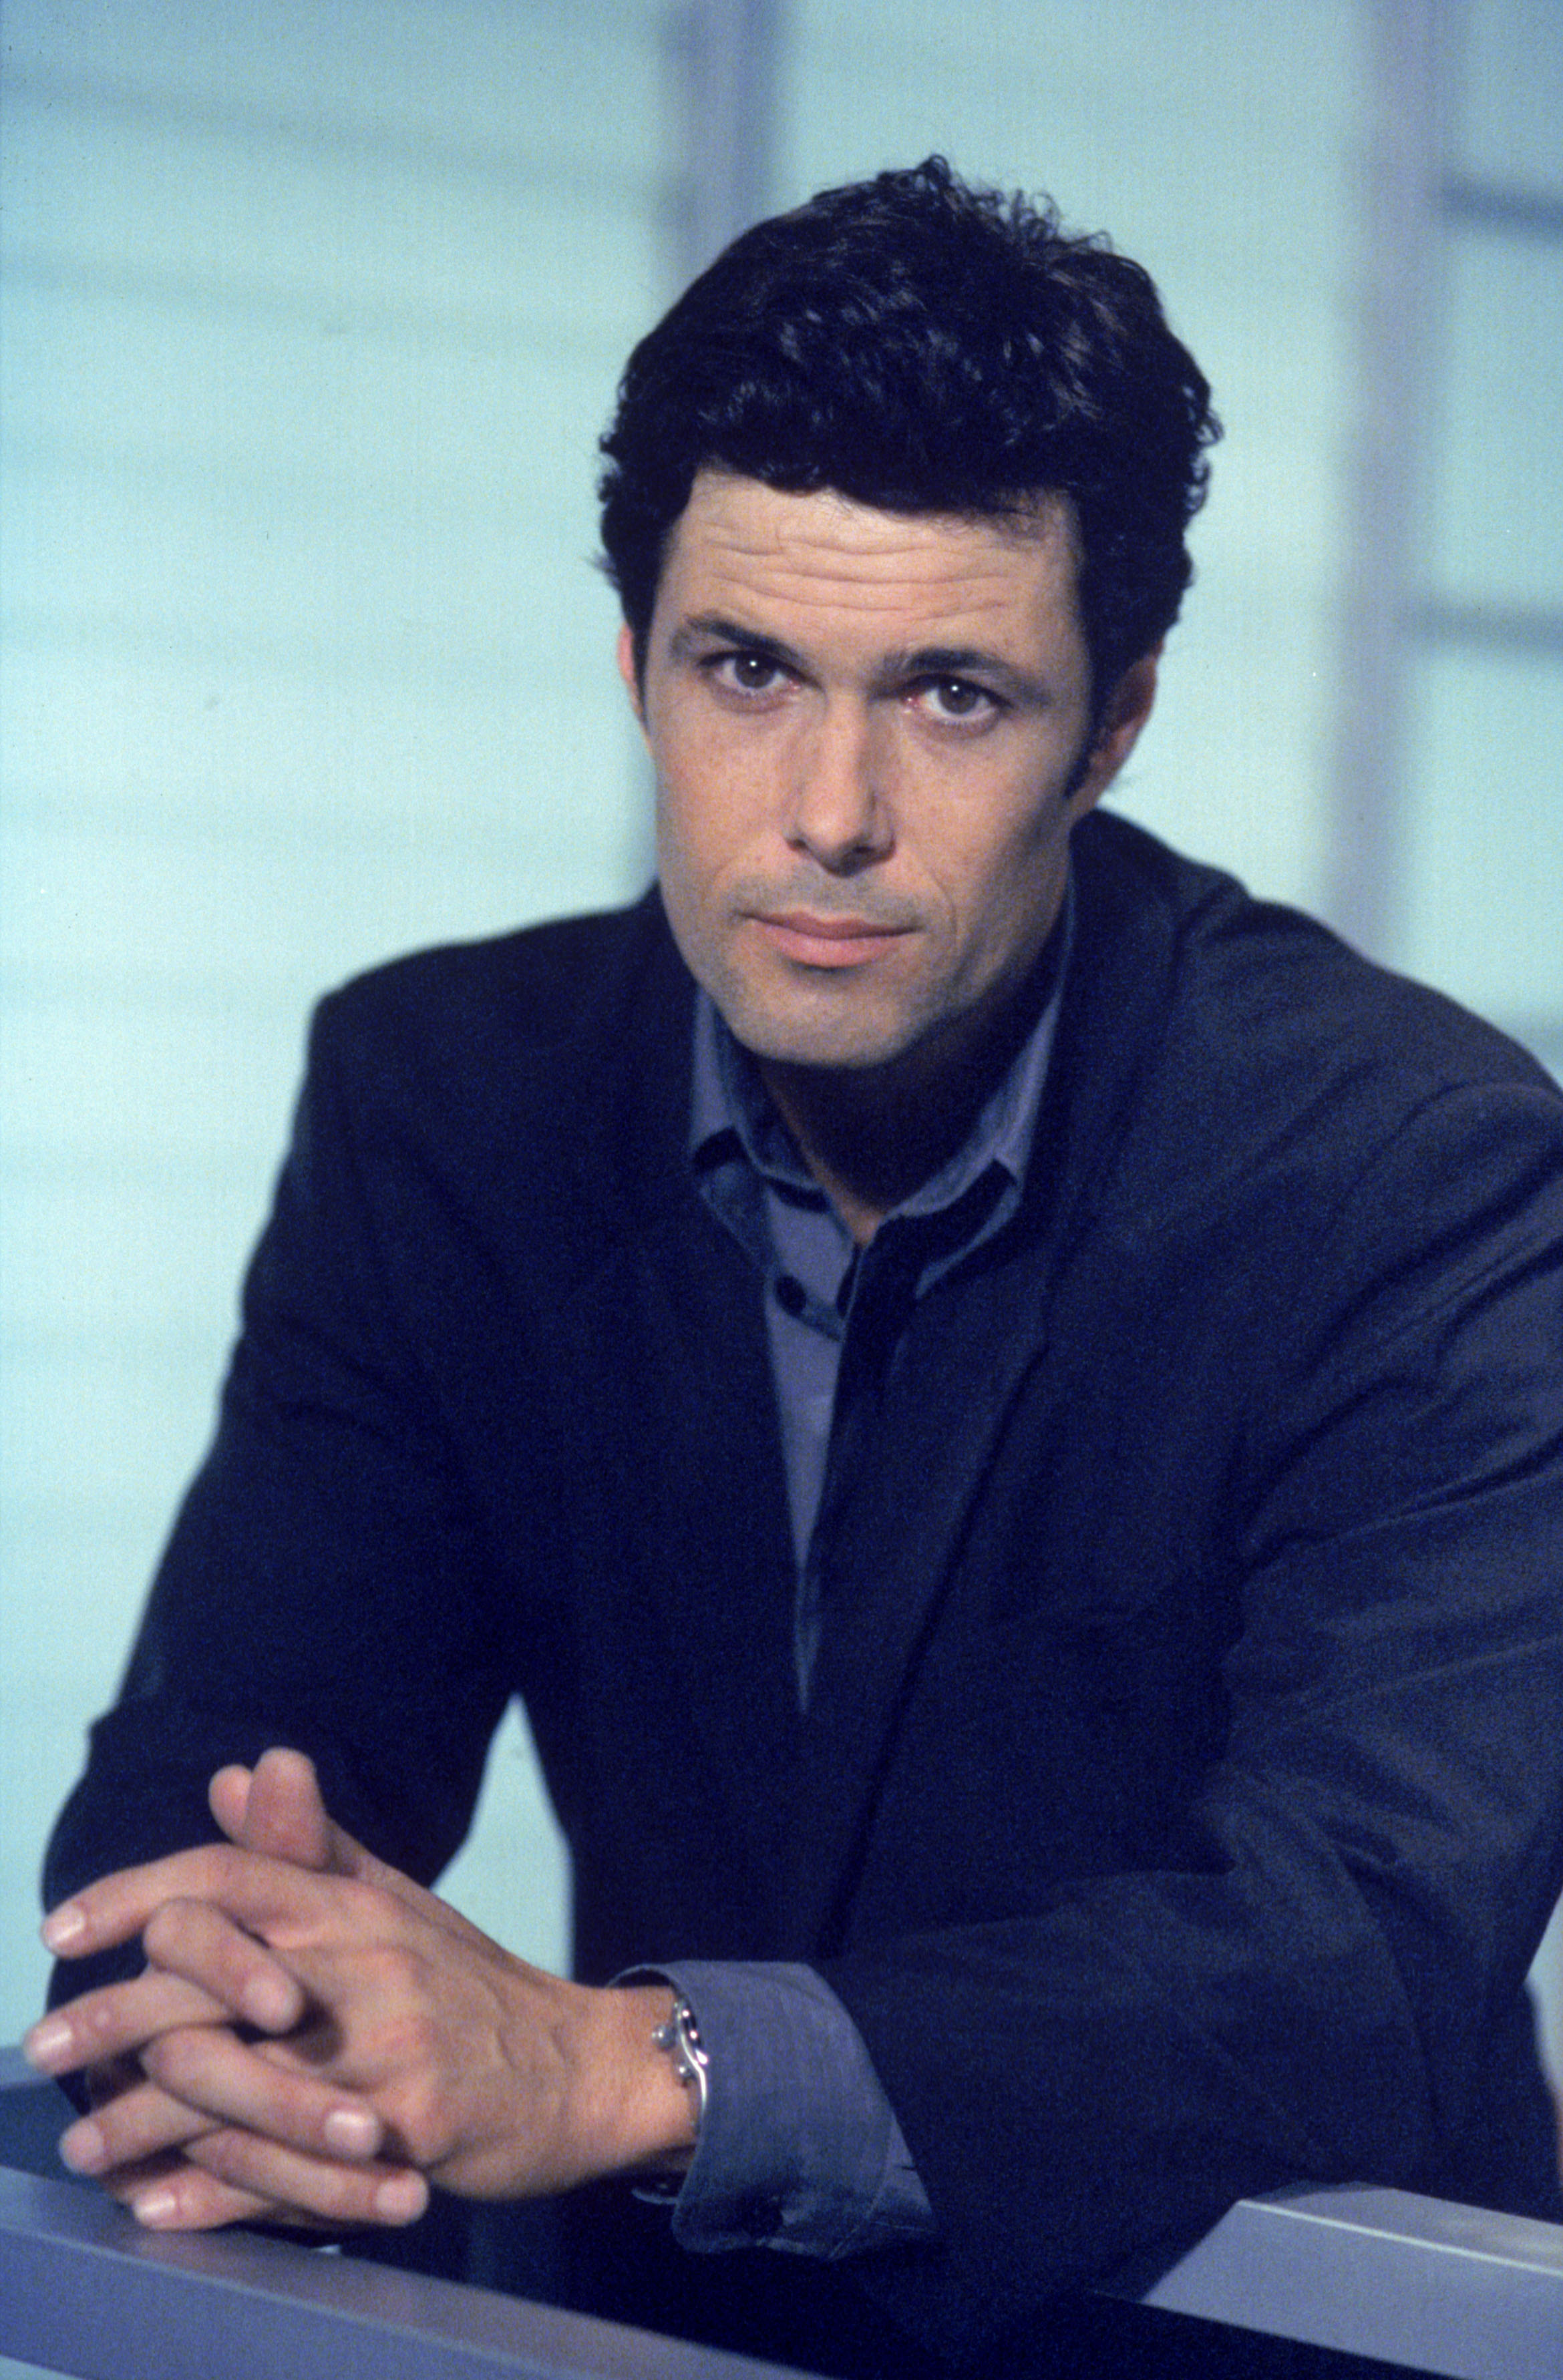 carlos bernard csi miamicarlos bernard wiki, carlos bernard in new 24, carlos bernard instagram, carlos bernard net worth, carlos bernard imdb, carlos bernard height, carlos bernard and reiko aylesworth, carlos bernard wikipedia, carlos bernard live another day, carlos bernard twitter, carlos bernard movies and tv shows, carlos bernard and tessie santiago, carlos bernard narcos, carlos bernard interview, carlos bernard bloomfield nj, carlos bernard dallas, carlos bernard castle, carlos bernard madam secretary, carlos bernard blog, carlos bernard csi miami